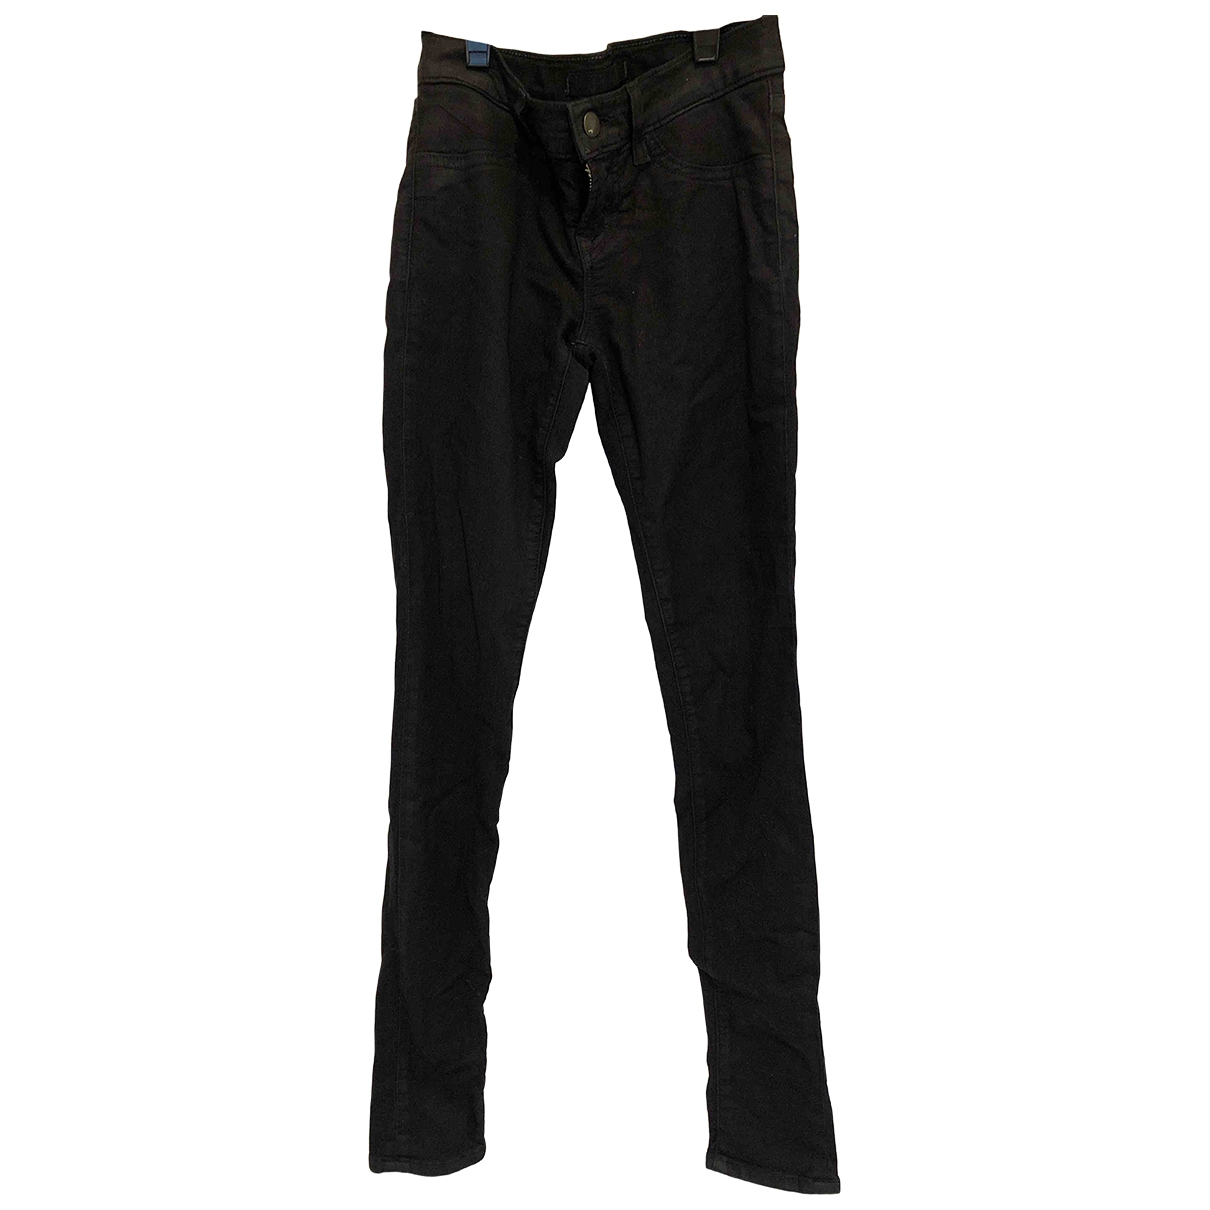 J Brand \N Black Cotton - elasthane Jeans for Women 24 US